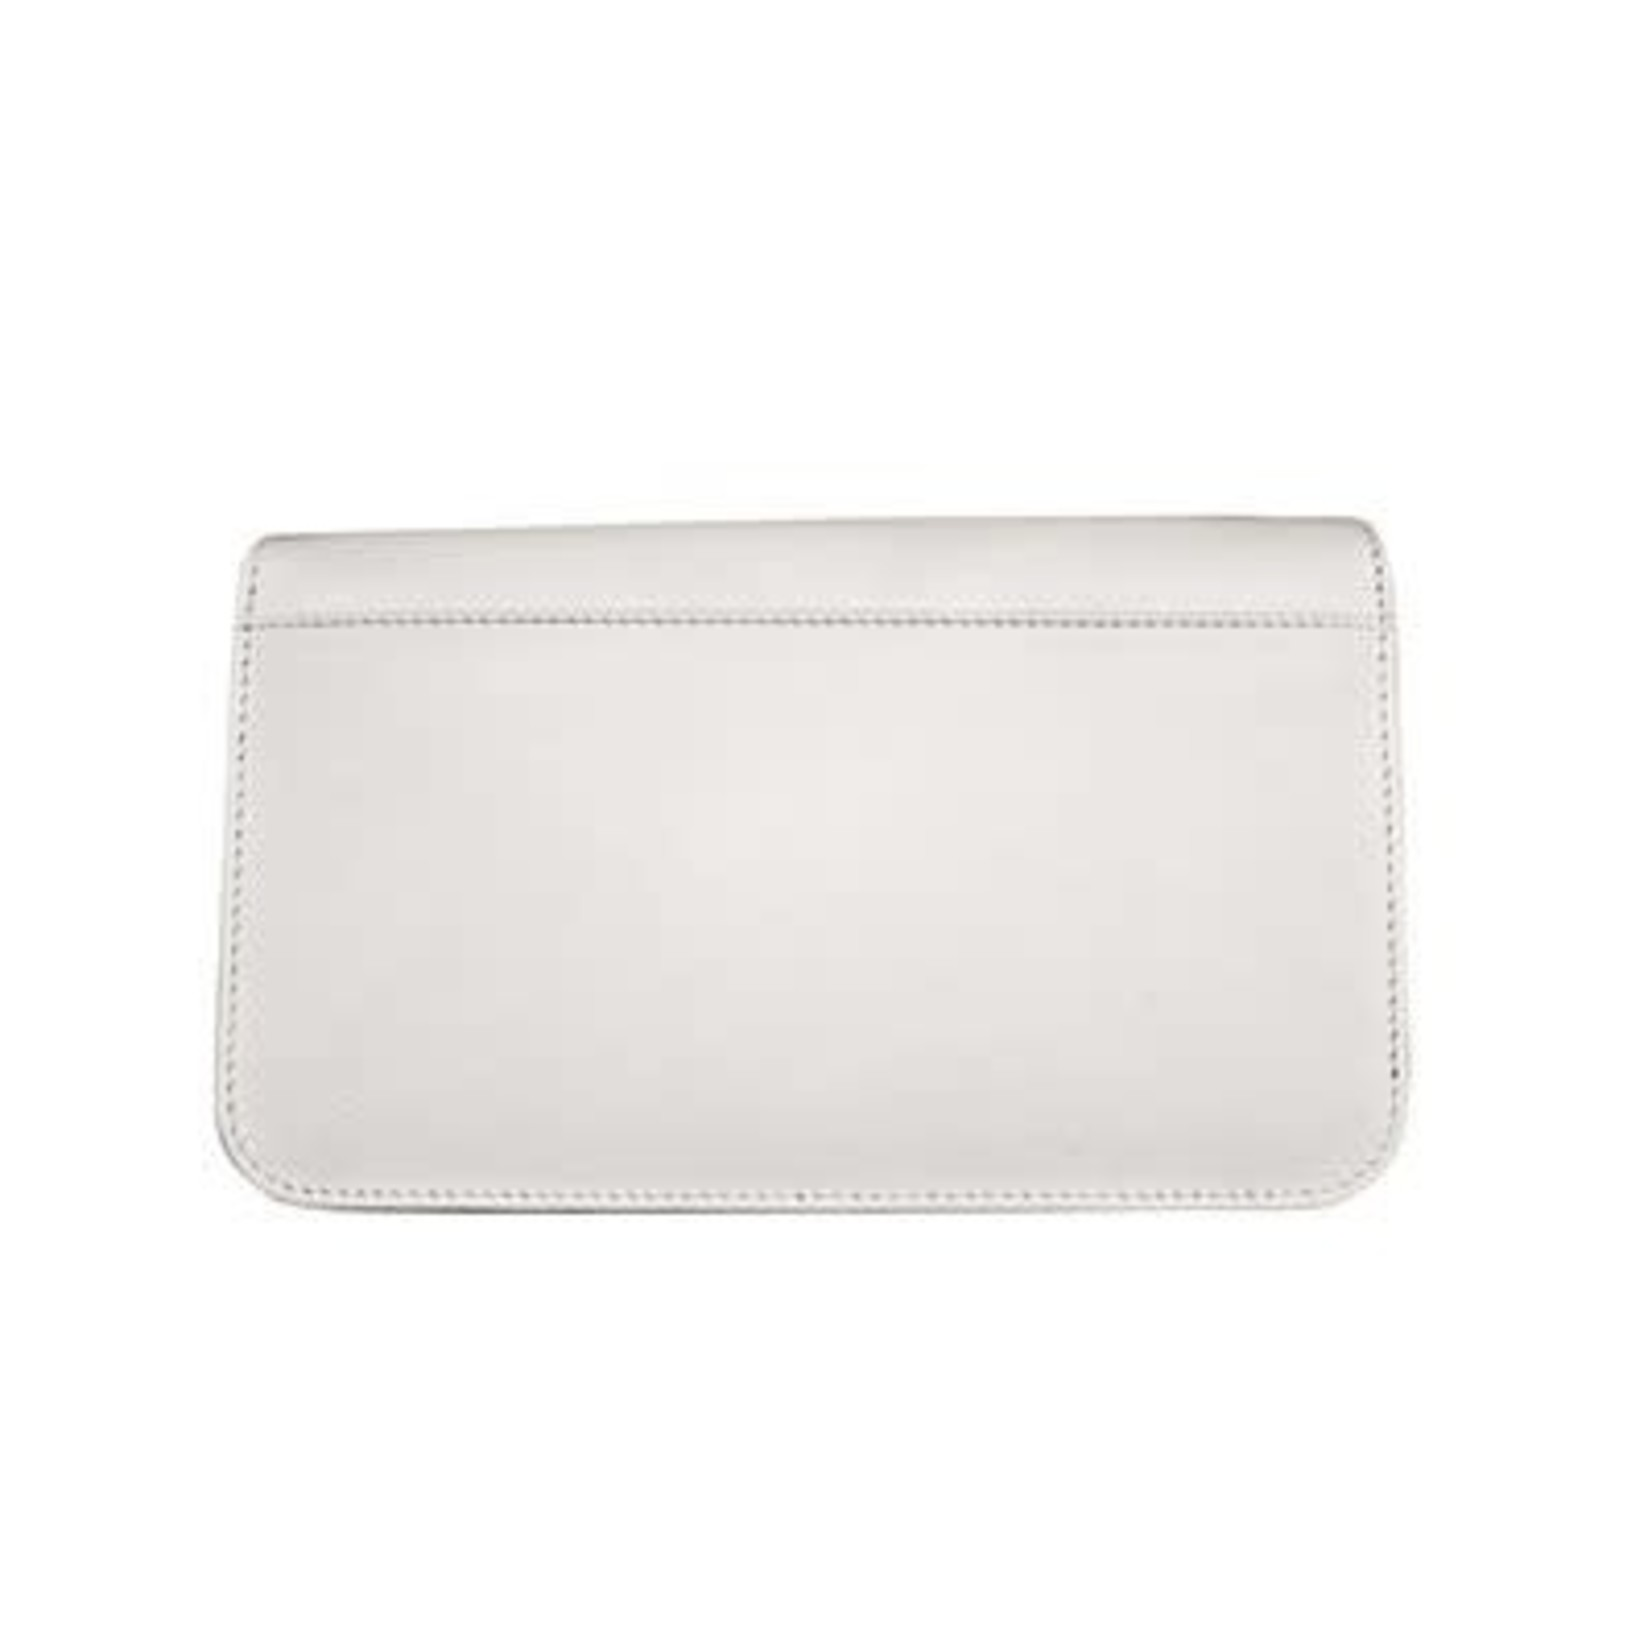 Leather Handbags and Accessories 6517 White - RFID Smartphone Crossbody